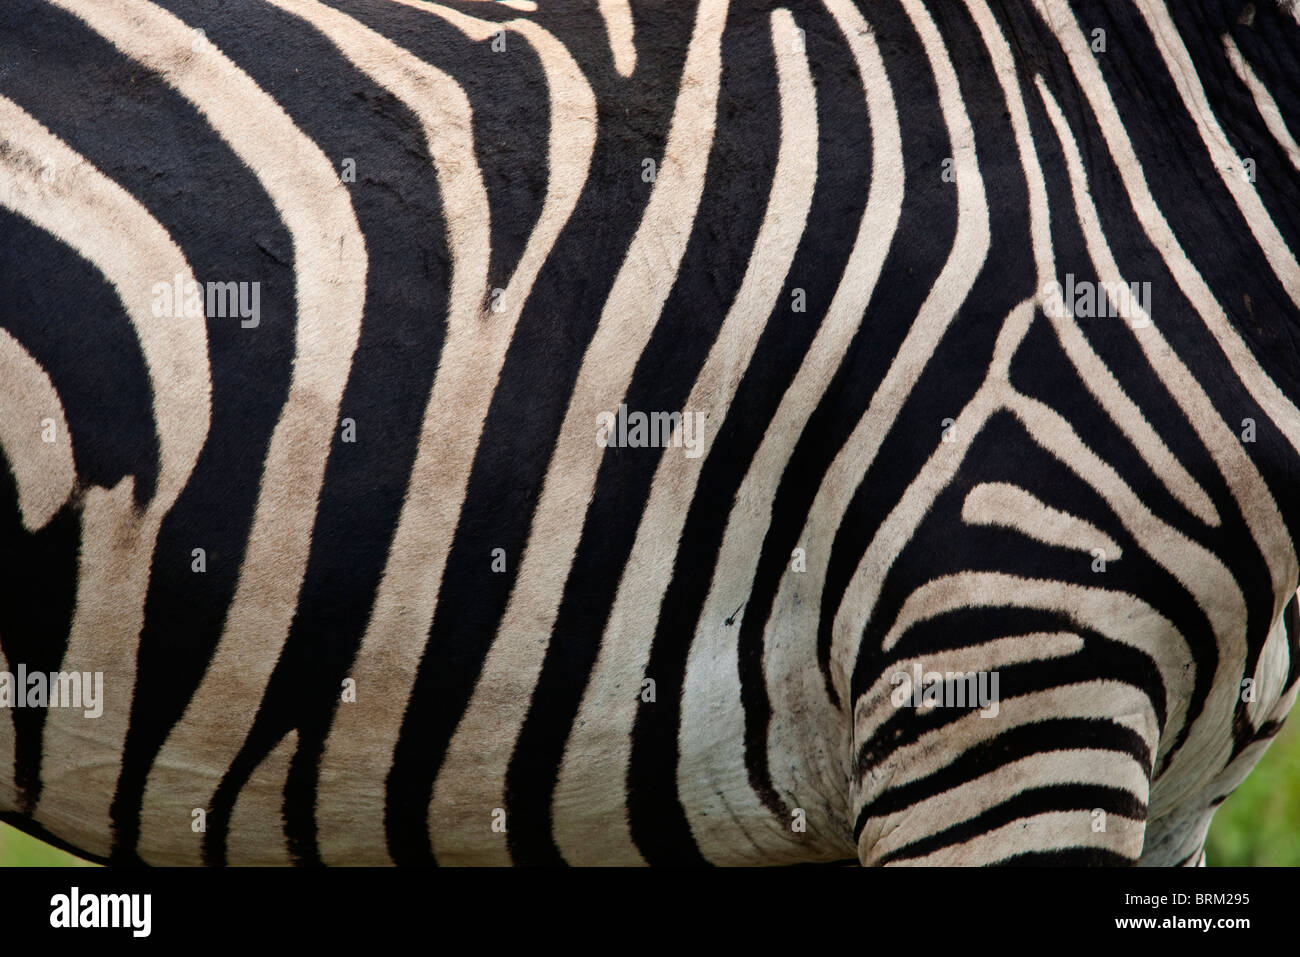 Close up of a zebra flank - Stock Image